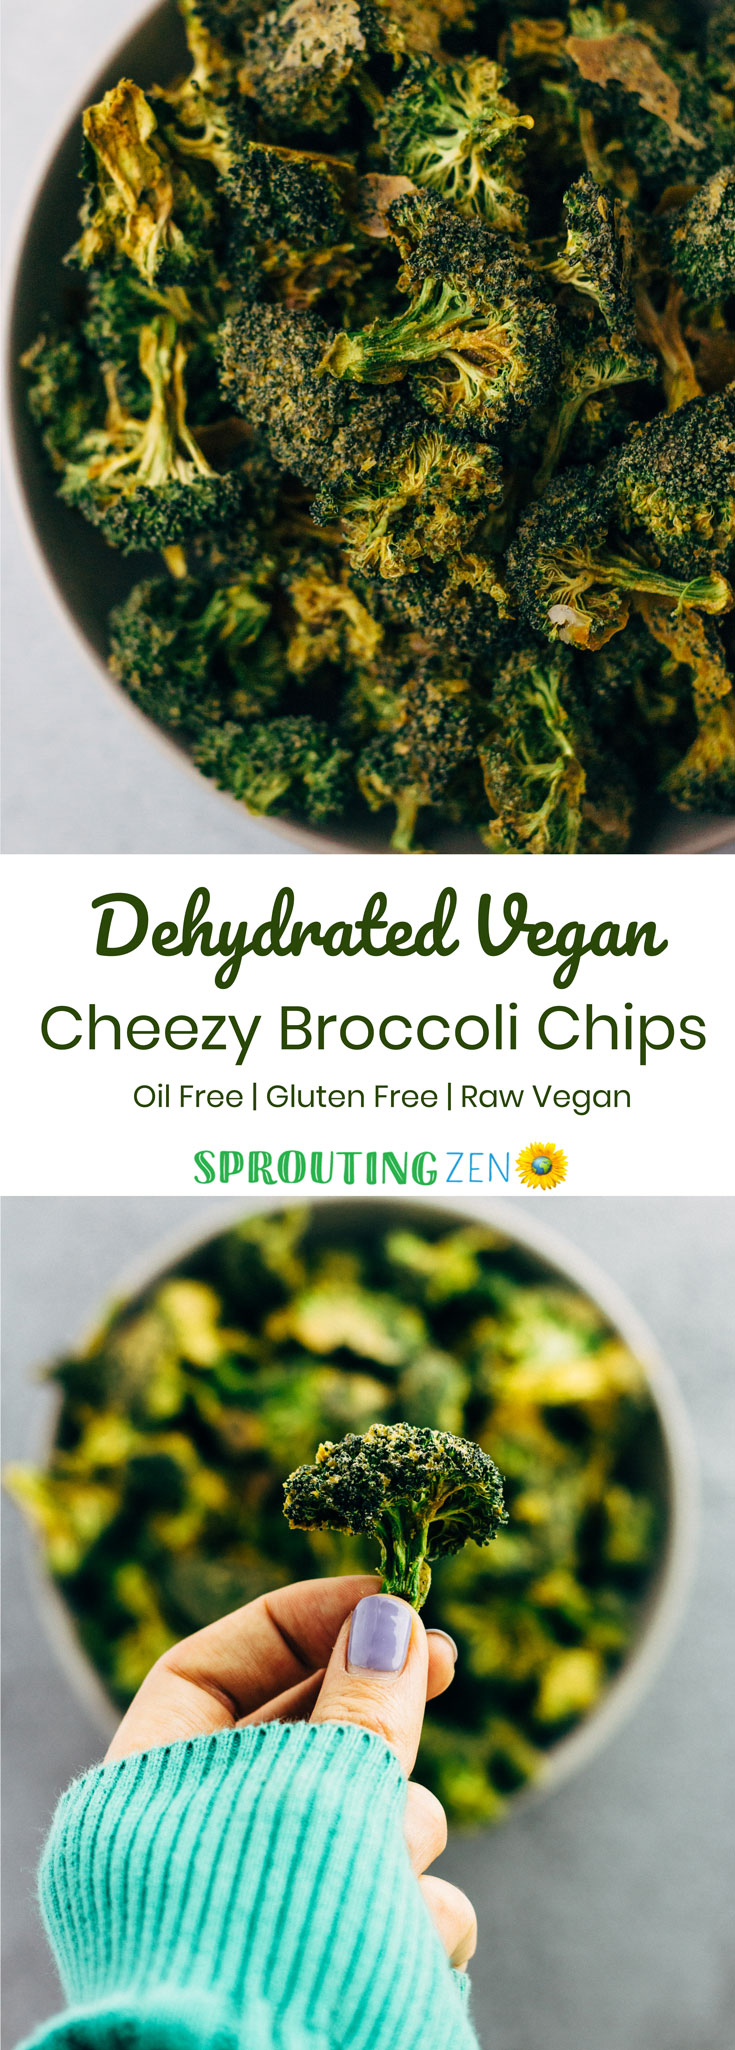 Raw Vegan Cheezy Broccoli Chips made in the dehydrator. #veganrecipes #whatveganseat #rawvegan #plantbased